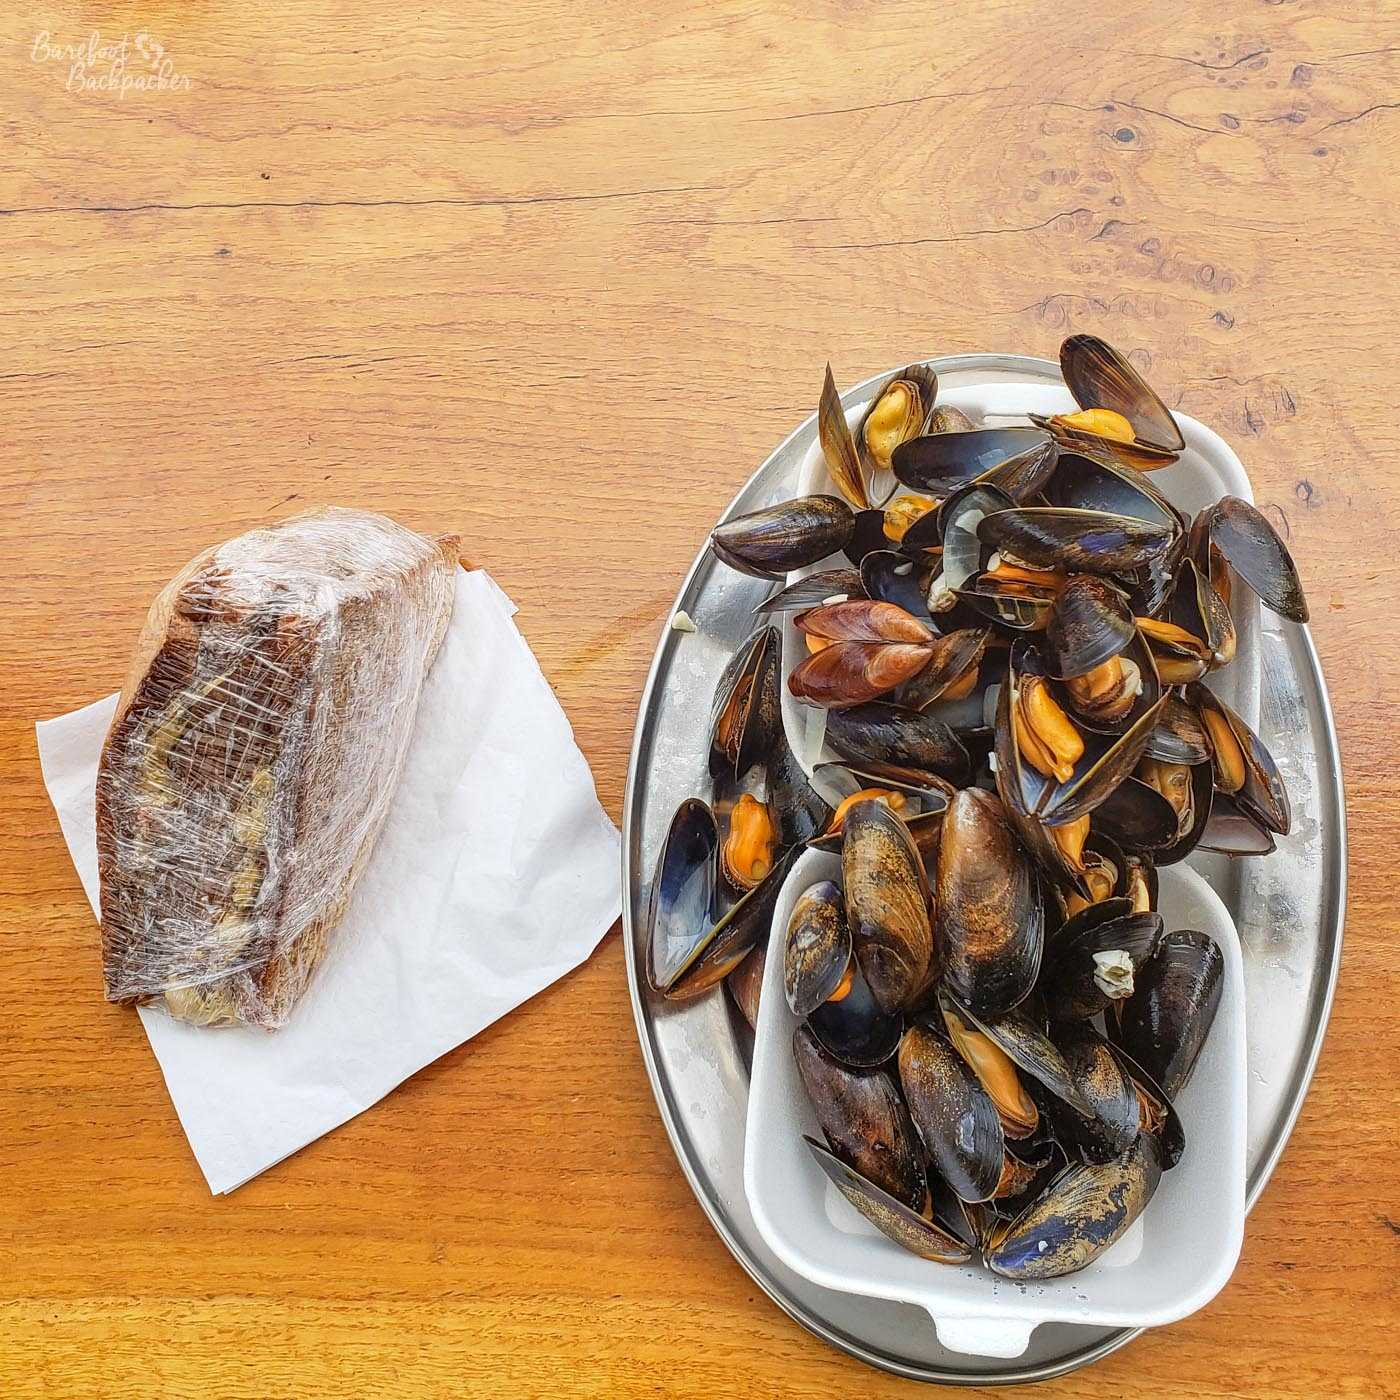 Mussels in a bowl, and a wrapped selection of prawn sandwiches, on an outside table at Oban ferryport.